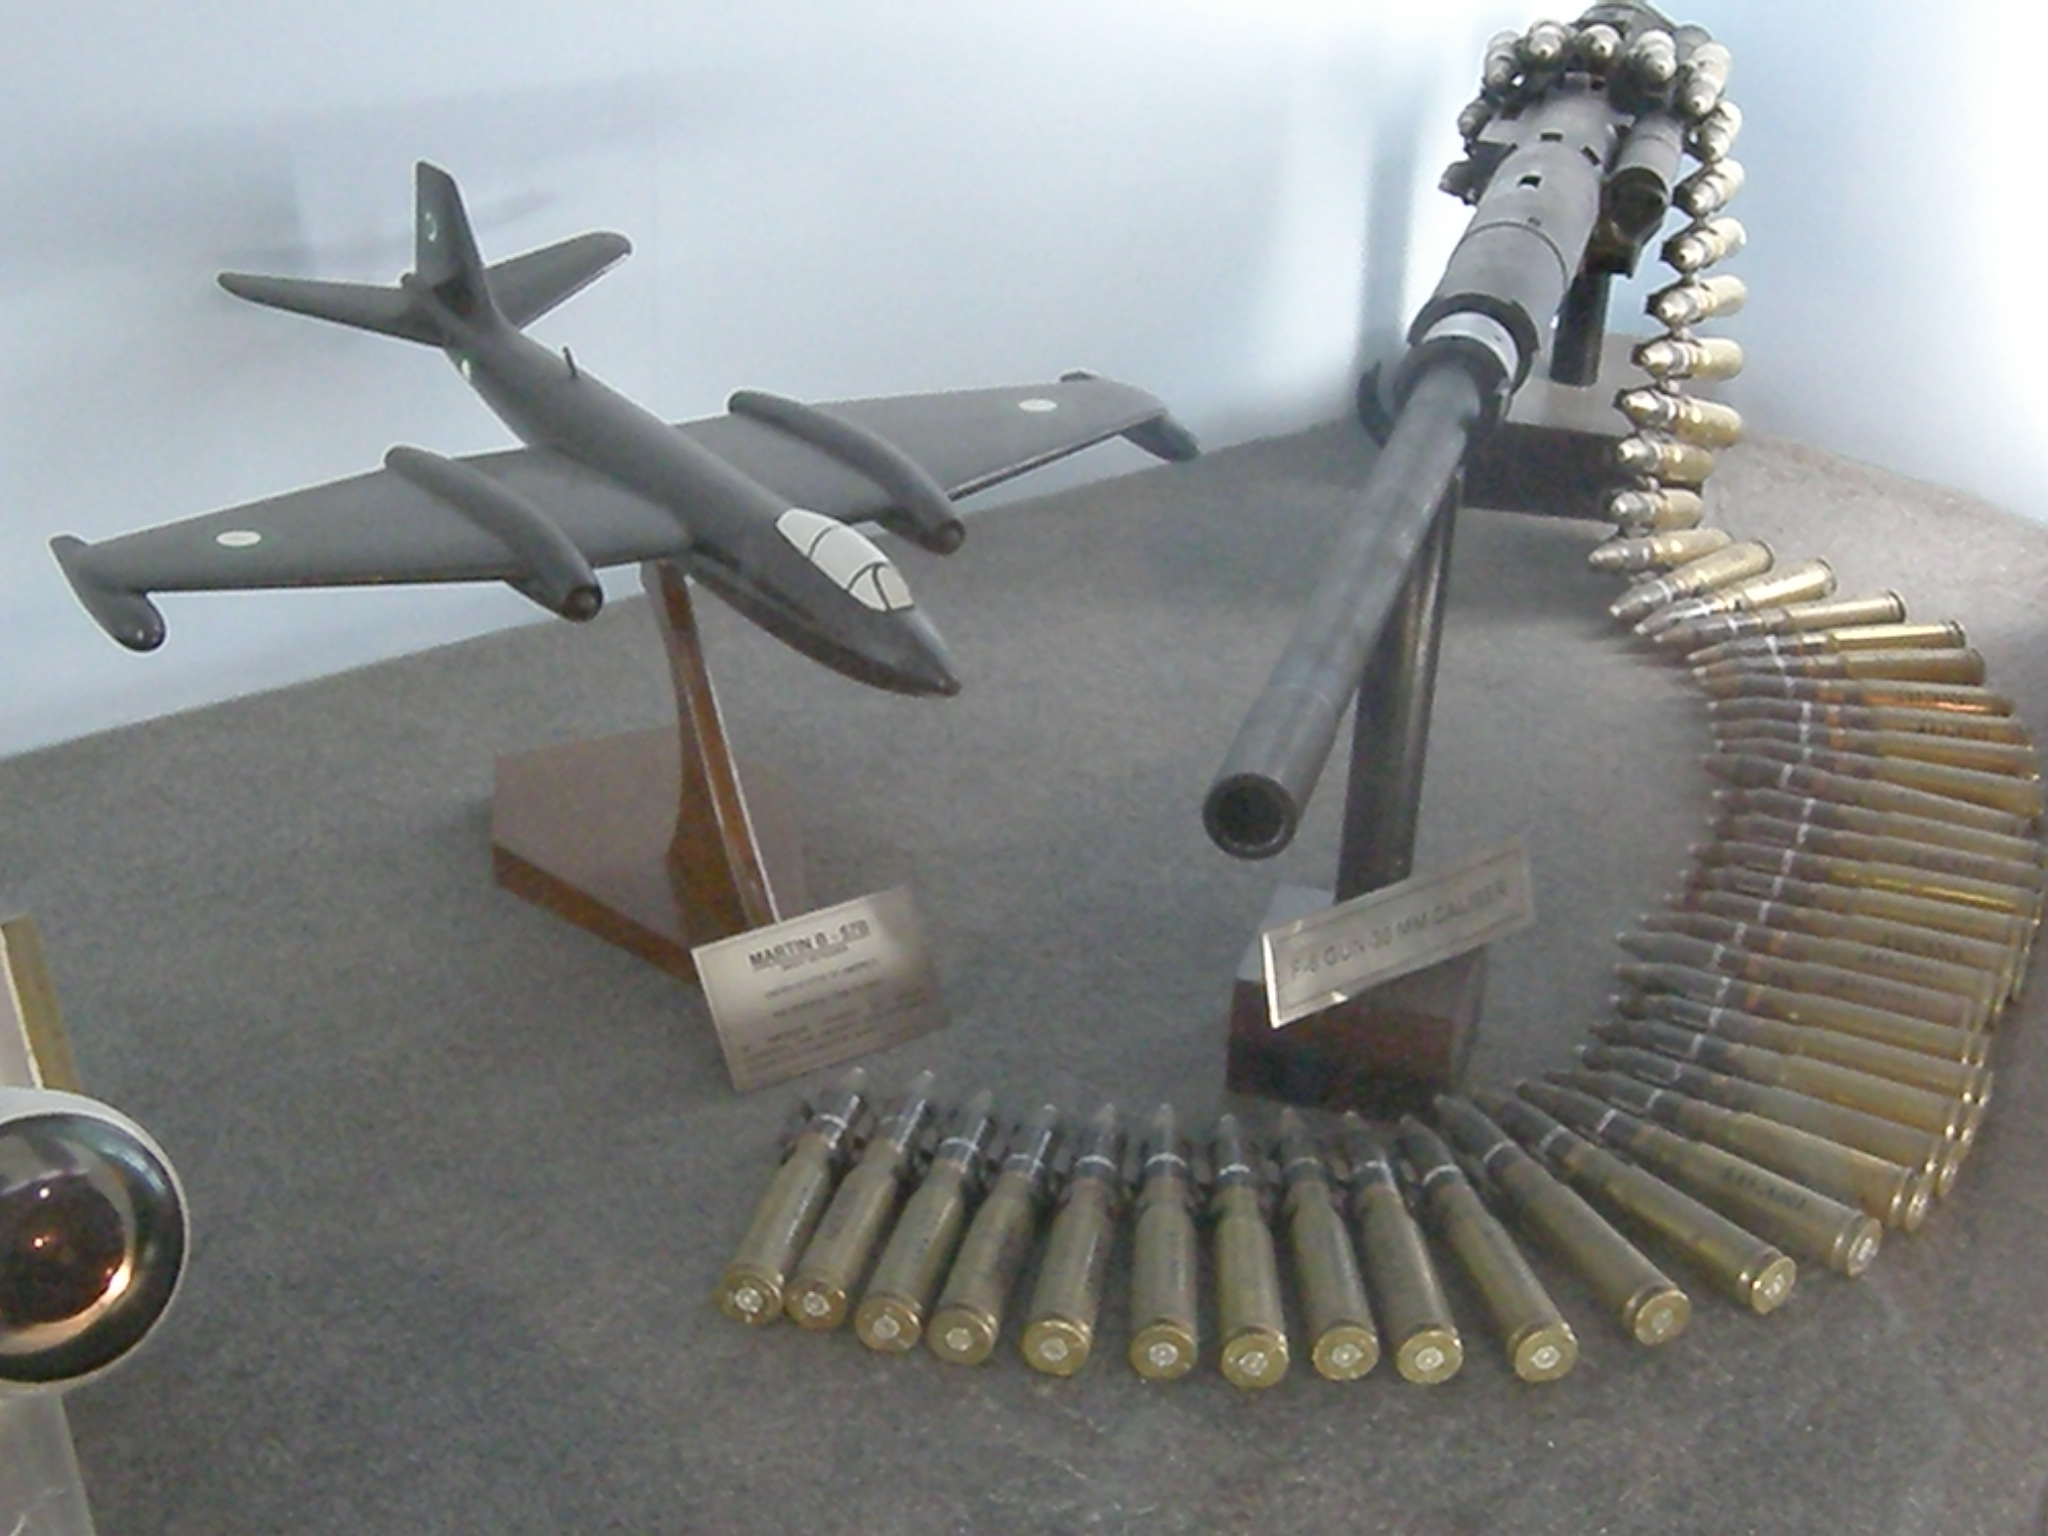 file pakistan air force museum 30 mm cannon of f 6 and model of martin b wikimedia commons. Black Bedroom Furniture Sets. Home Design Ideas